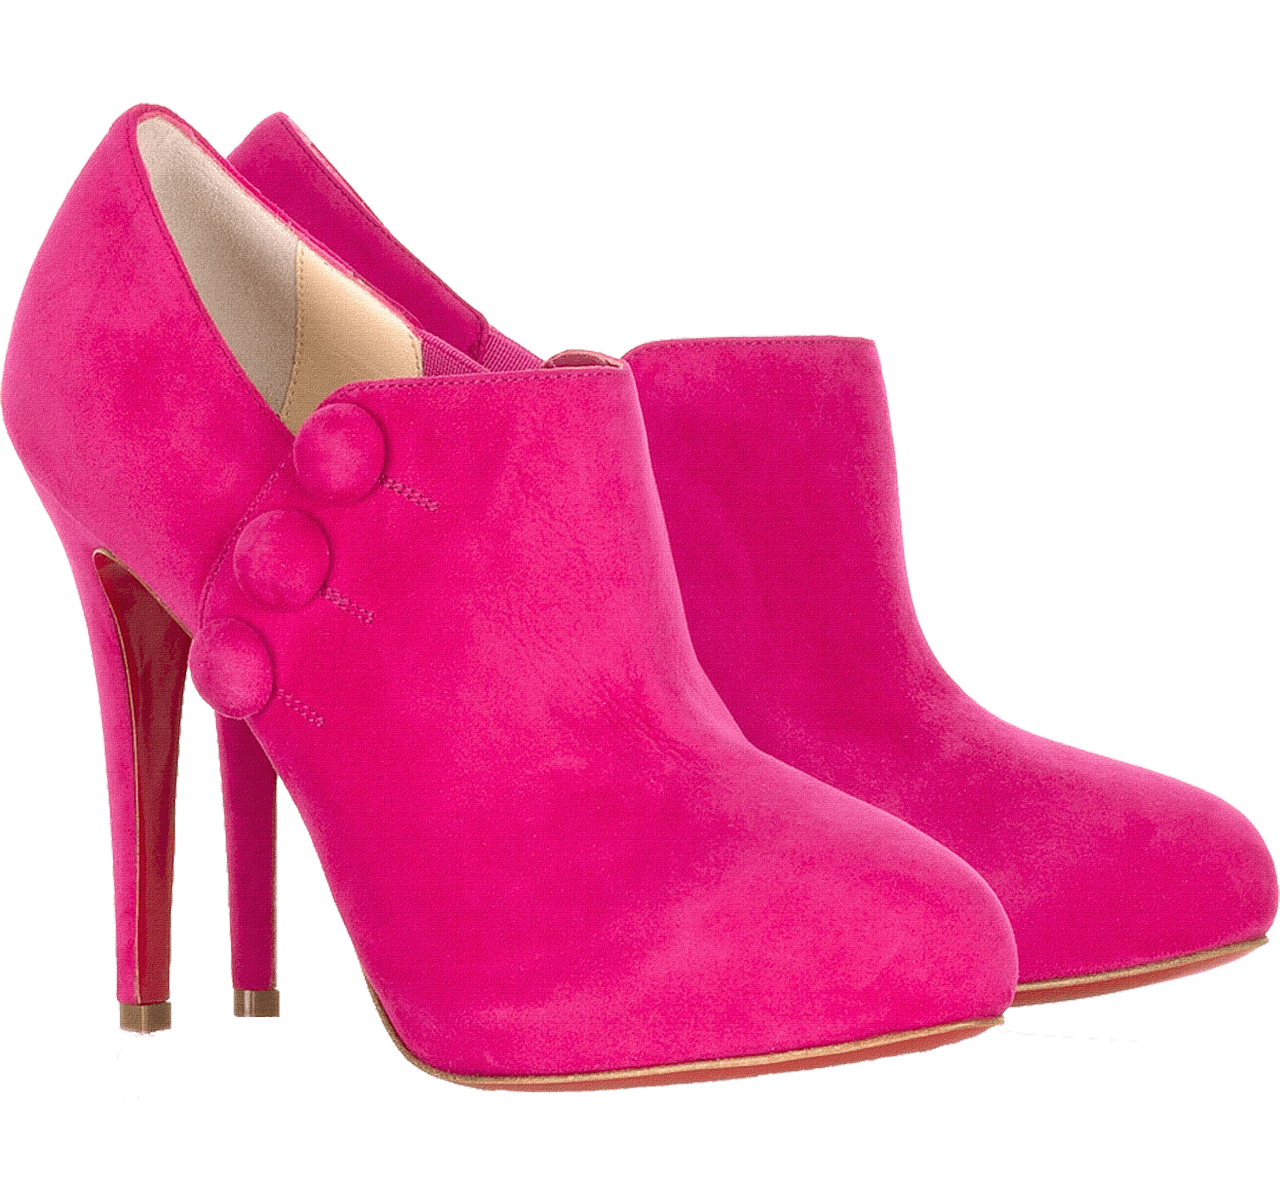 Pink Women Shoes Png Image PNG Image